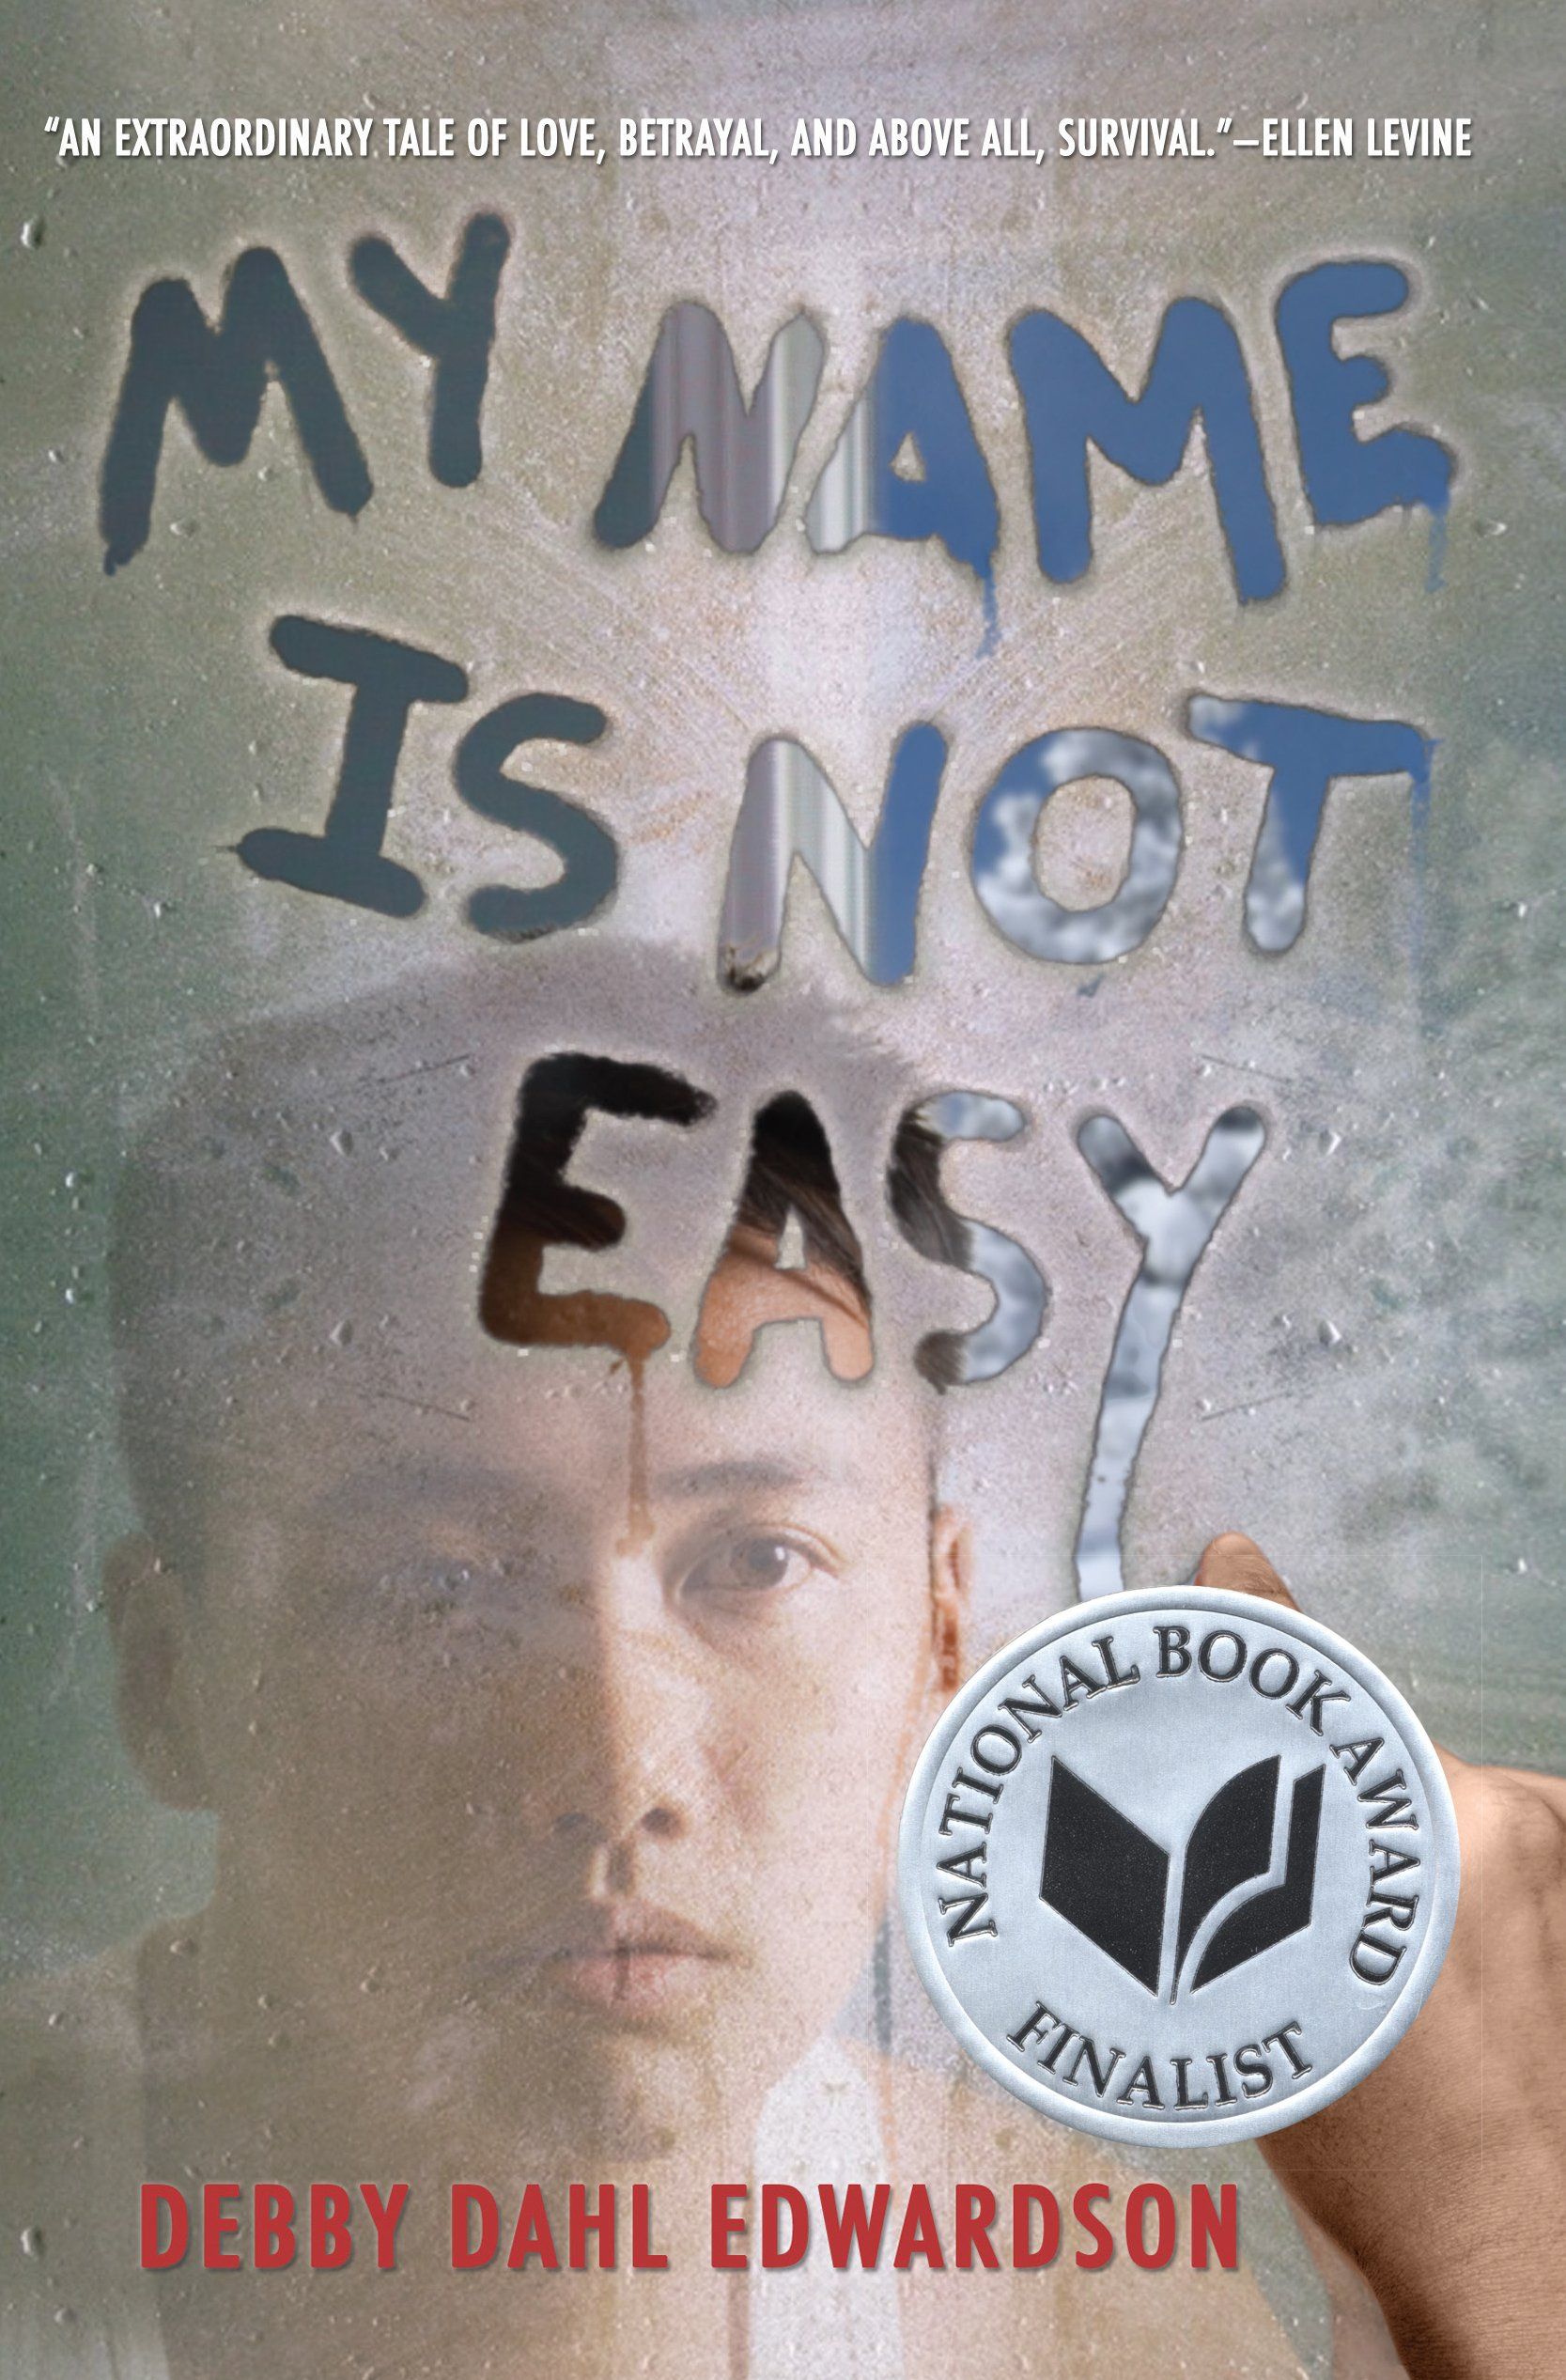 American Indian books: My Name Is Not Easy